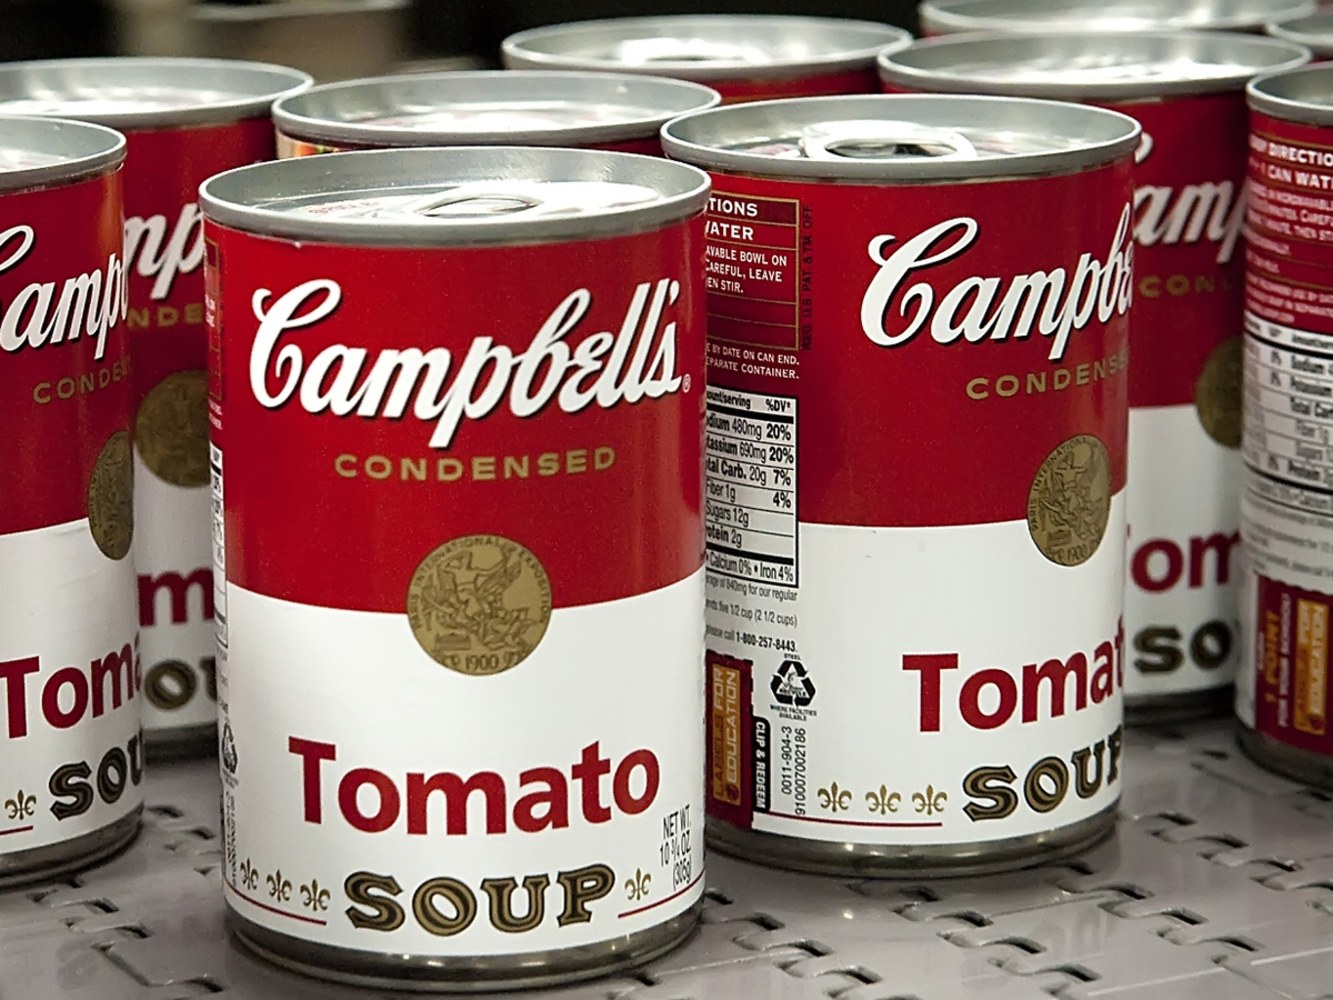 campbell soup company Soulfull project goes national, aiming to donate one million servings by 2019.